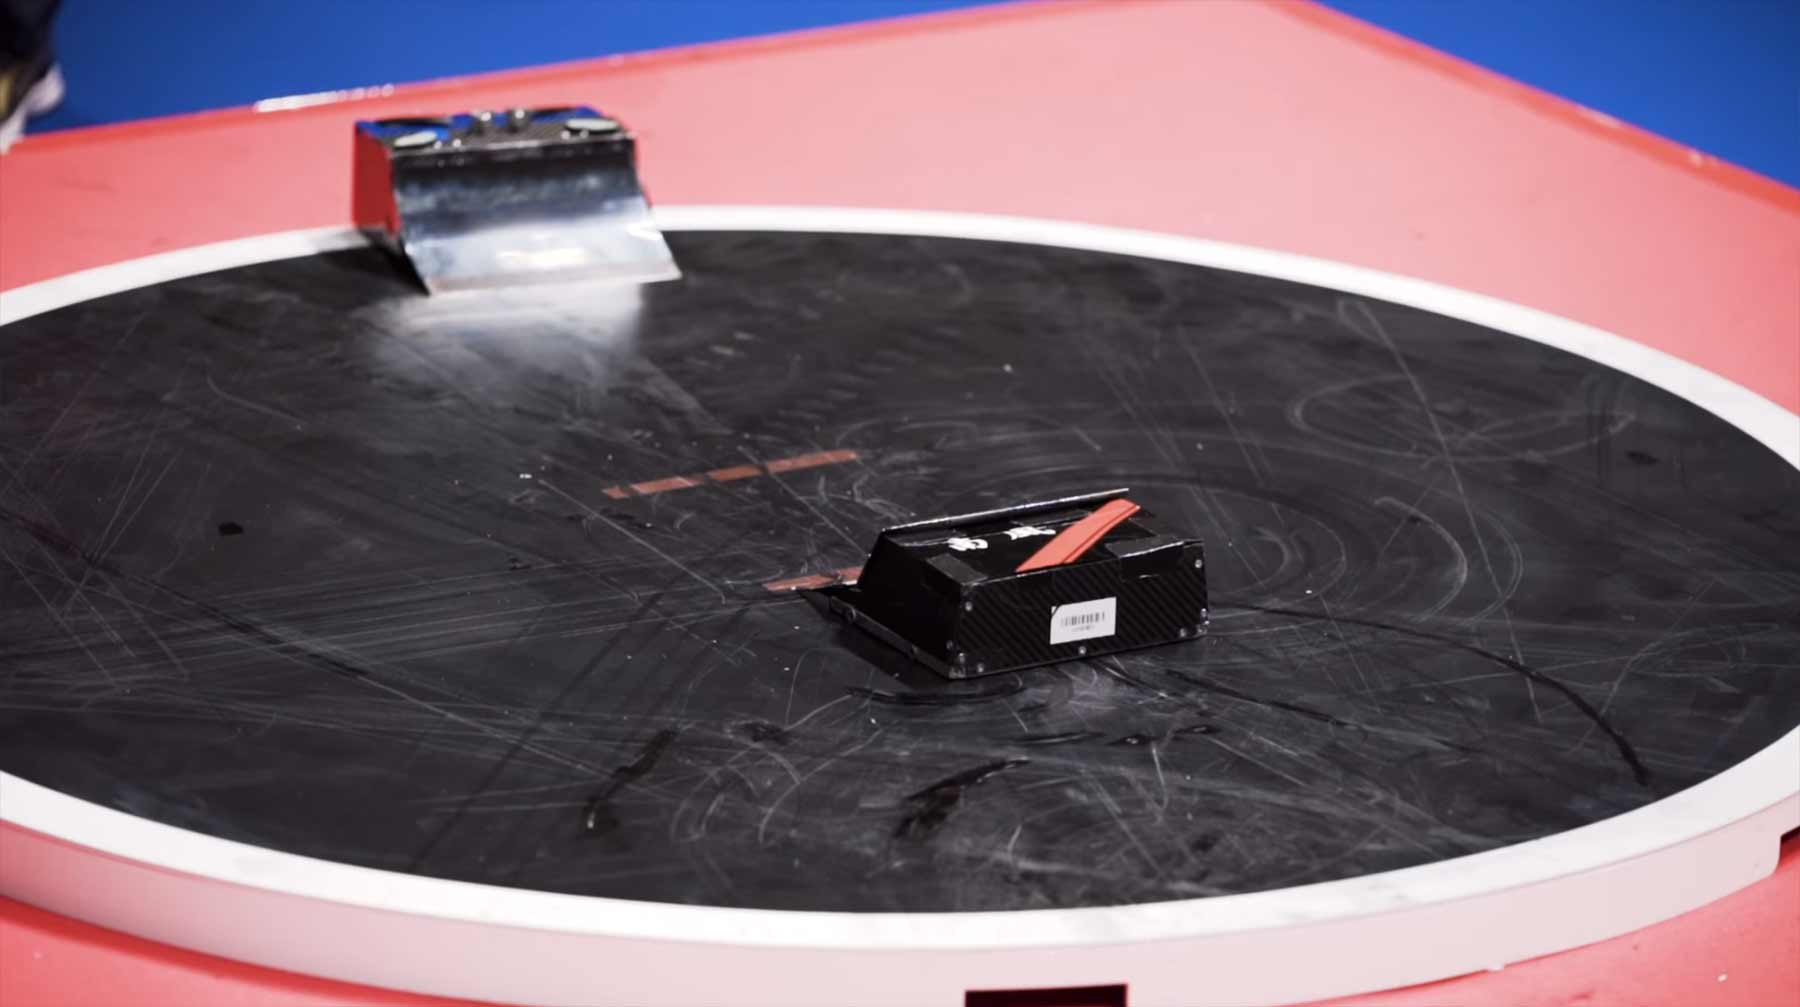 The Freakishly Fast World of Robot Sumo